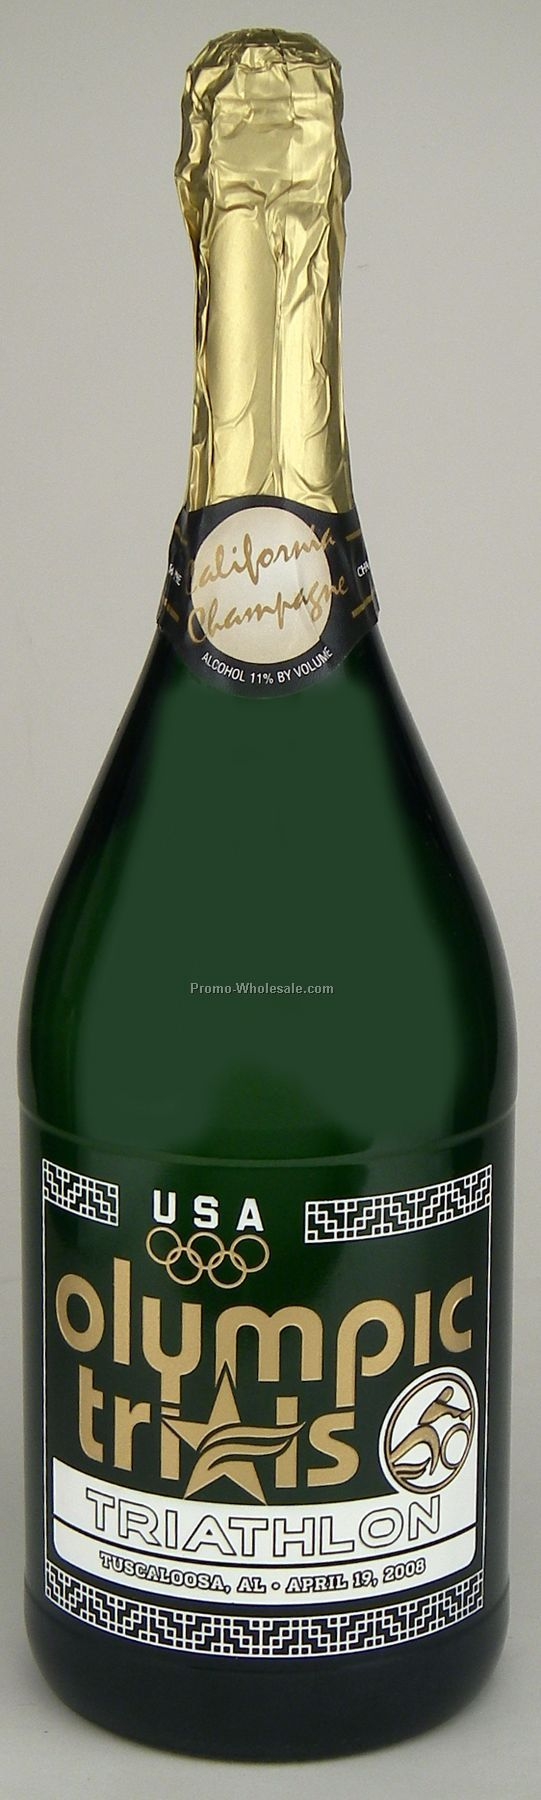 1.5l Magnum Custom Etched Sparkling Wine Woodbridge, Ca